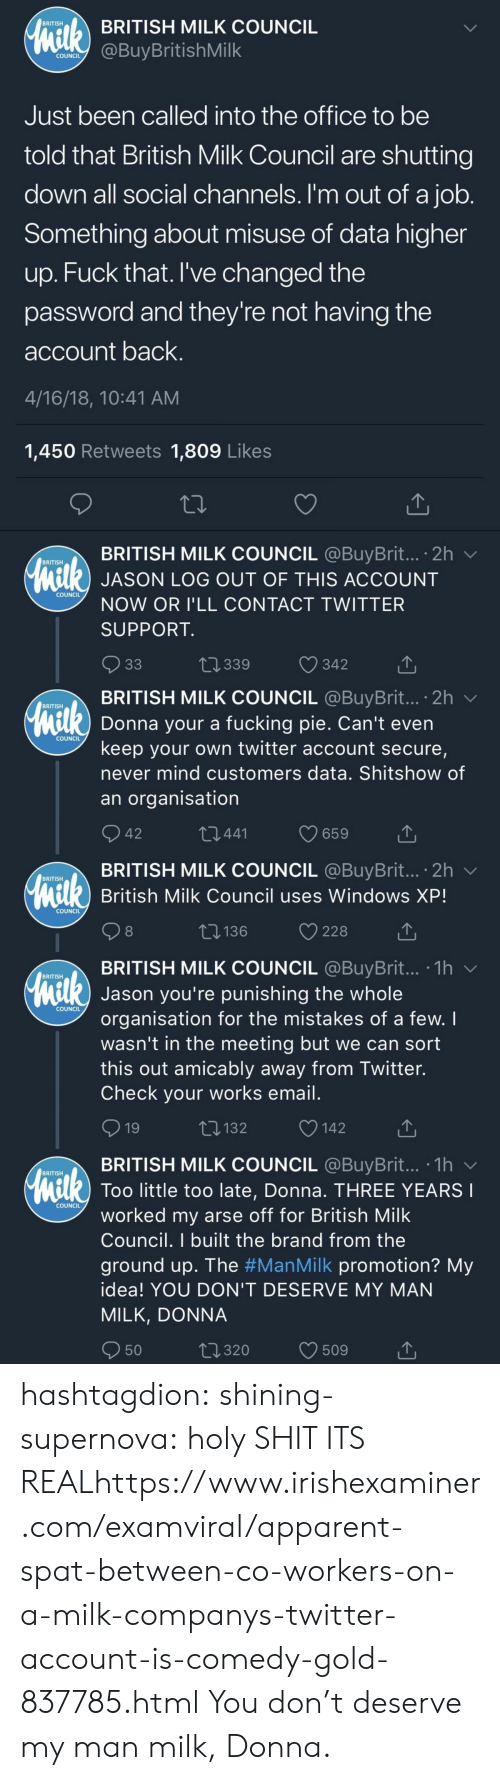 supernova: BRITISH MILK COUNCIL  BRITISH  COundBuyBritishMilk  COUNCIL  Just been called into the office to be  told that British Milk Council are shutting  down all social channels. I'm out of a job  Something about misuse of data higher  up. Fuck that. I've changed the  password and they're not having the  account back  4/16/18, 10:41 AM  1,450 Retweets 1,809 Like:s  BRITISH MILK COUNCIL @BuyBrit...。2h ﹀  BRITISH  l) JASON LOG OUT OF THIS ACCOUNT  COUNCIL  NOW OR I'LL CONTACT TWITTER  SUPPORT  t 339  342   . BRITISH MILK COUNCIL @BuyBrit...。2h ﹀  BRITISH  Donna your a fucking pie. Can't even  keep your own twitter account secure,  never mind customers data. Shitshow of  an organisation  COUNCIL  42  441  BRITISH MILK COUNCIL @BuyBrit... 2h v  British Milk Council uses Windows XP!  BRITISH  COUNCIL  8  t: 136  228  TBRITISH MILK COUNCIL @BuyBrit... .1hv  BRITISH  Jason you're punishing the whole  organisation for the mistakes of a few. I  wasn't in the meeting but we can sort  this out amicably away from Twitter.  Check your works email  COUNCIL  132  142  BRITISH MILK COUNCIL @BuyBrit...-1h  BRITISH  Too little too late, Donna. THREE YEARS  COUNCIL  worked my arse off for British Milk  Council. I built the brand from the  ground up. The #ManMilk promotion? My  idea! YOU DON'T DESERVE MY MAN  MILK, DONNA  50  320  509 hashtagdion:  shining-supernova:  holy SHIT ITS REALhttps://www.irishexaminer.com/examviral/apparent-spat-between-co-workers-on-a-milk-companys-twitter-account-is-comedy-gold-837785.html  You don't deserve my man milk, Donna.